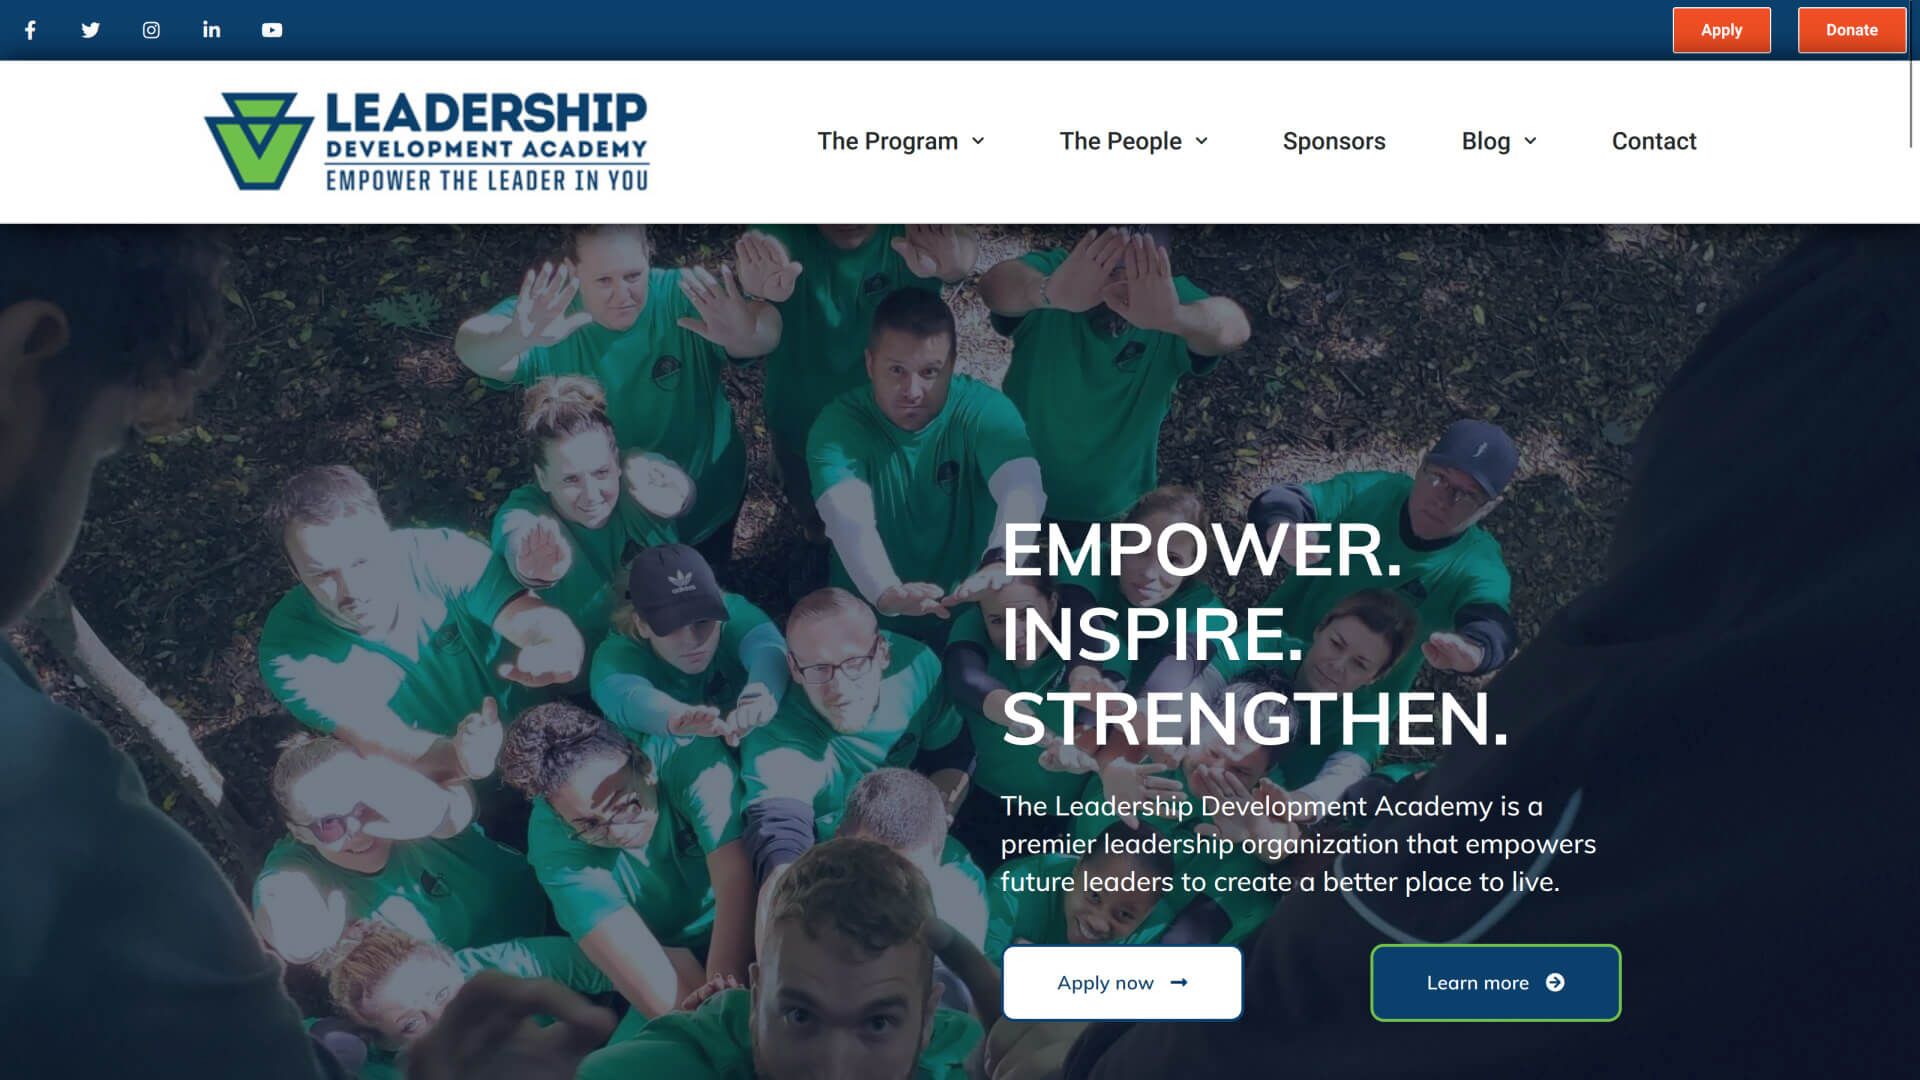 Screenshot of Leadership Development Academy homepage from March 27, 2020